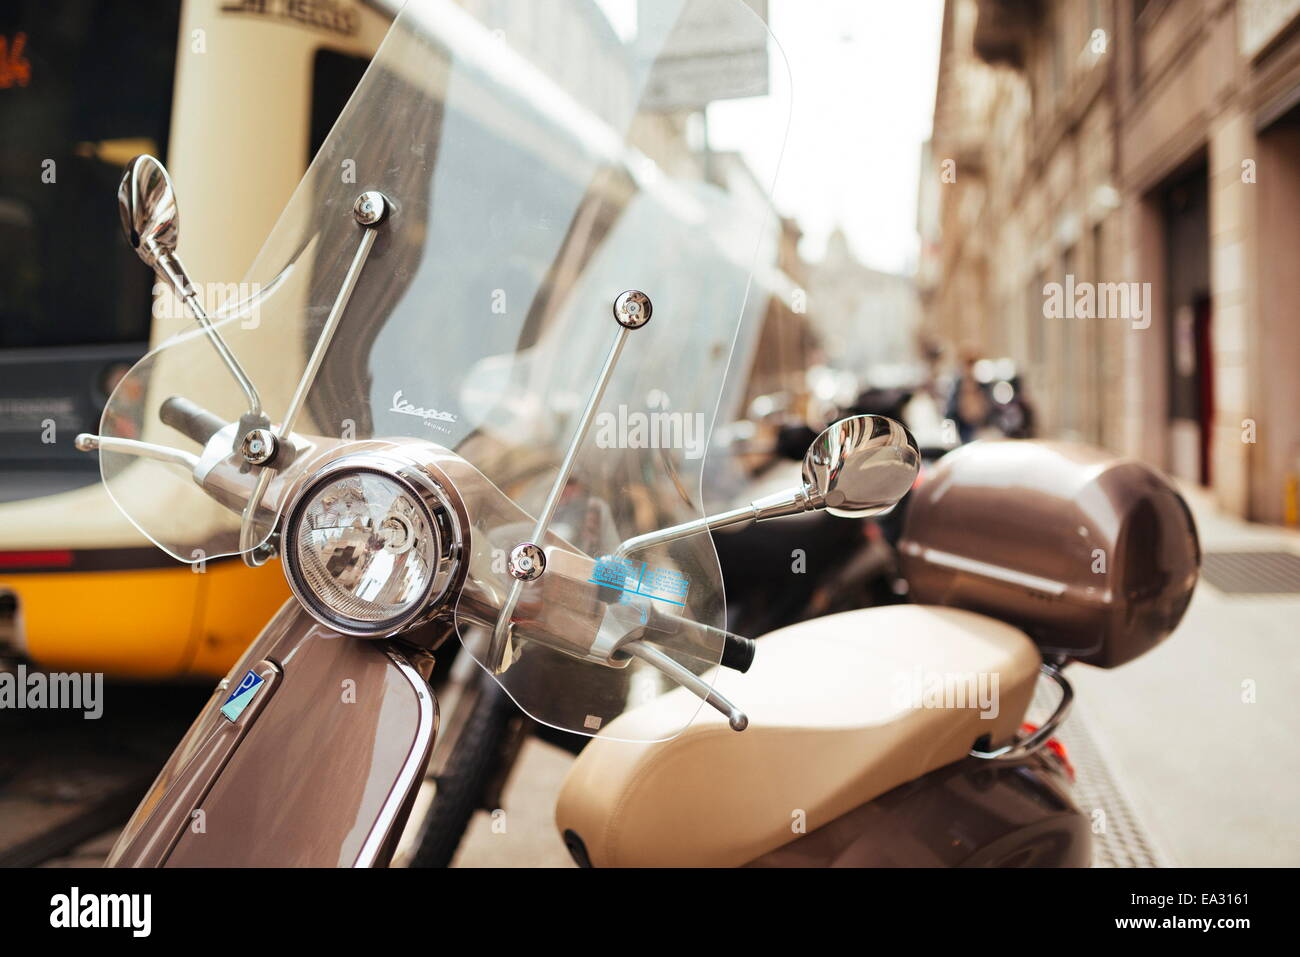 Parked Vespa moped, Milan, Lombardy, Italy, Europe - Stock Image